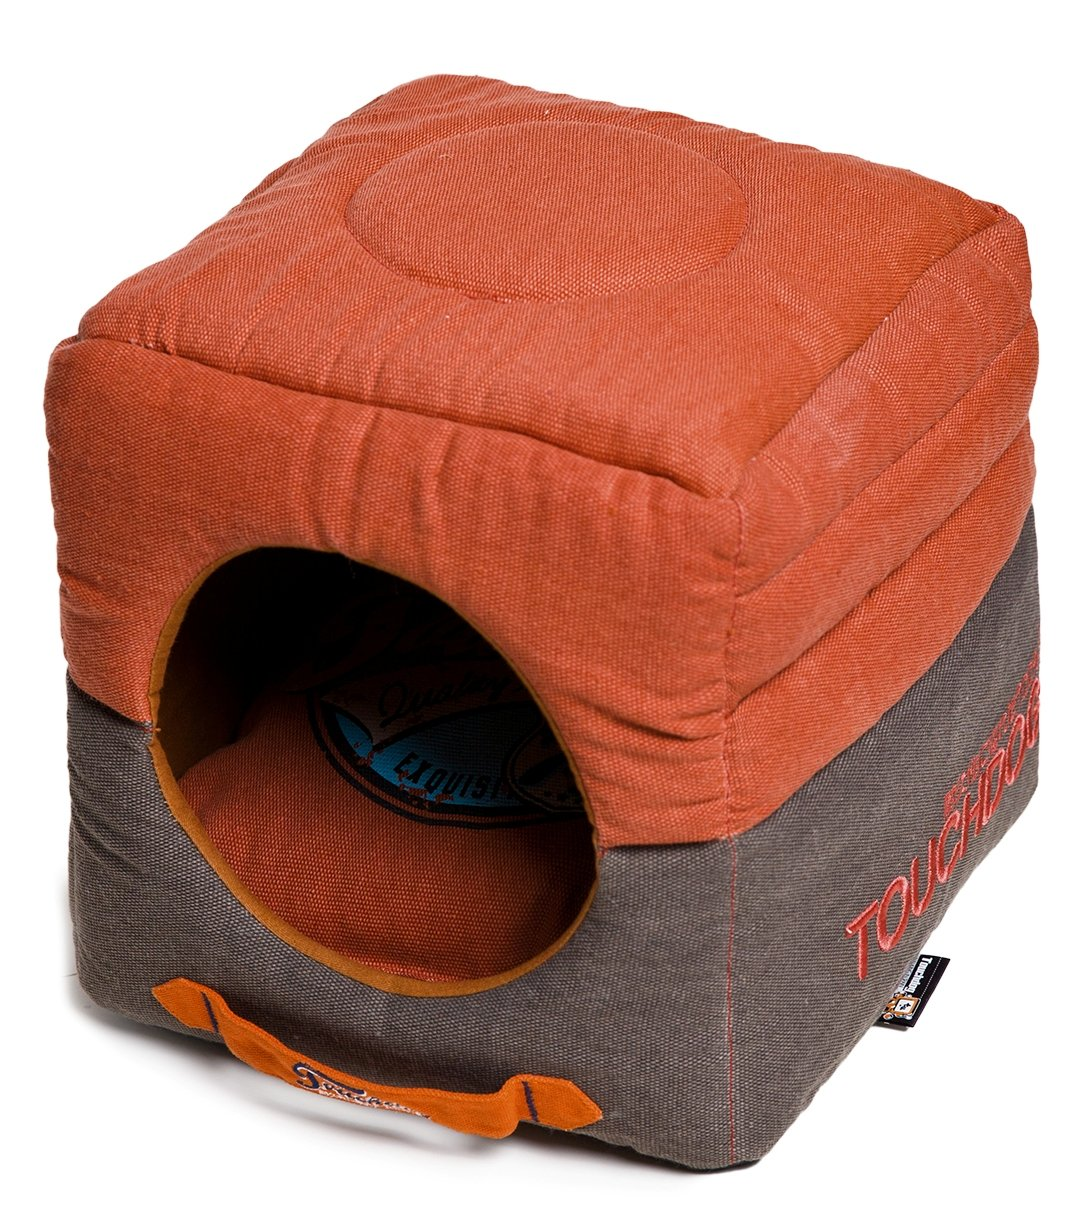 TOUCHDOG 'Vintage Squared' Congreenible and Reversible Retro Printed 2-in-1 Collapsible Pet Dog Cat House Bed, One Size, Grenadine, Dark Brown